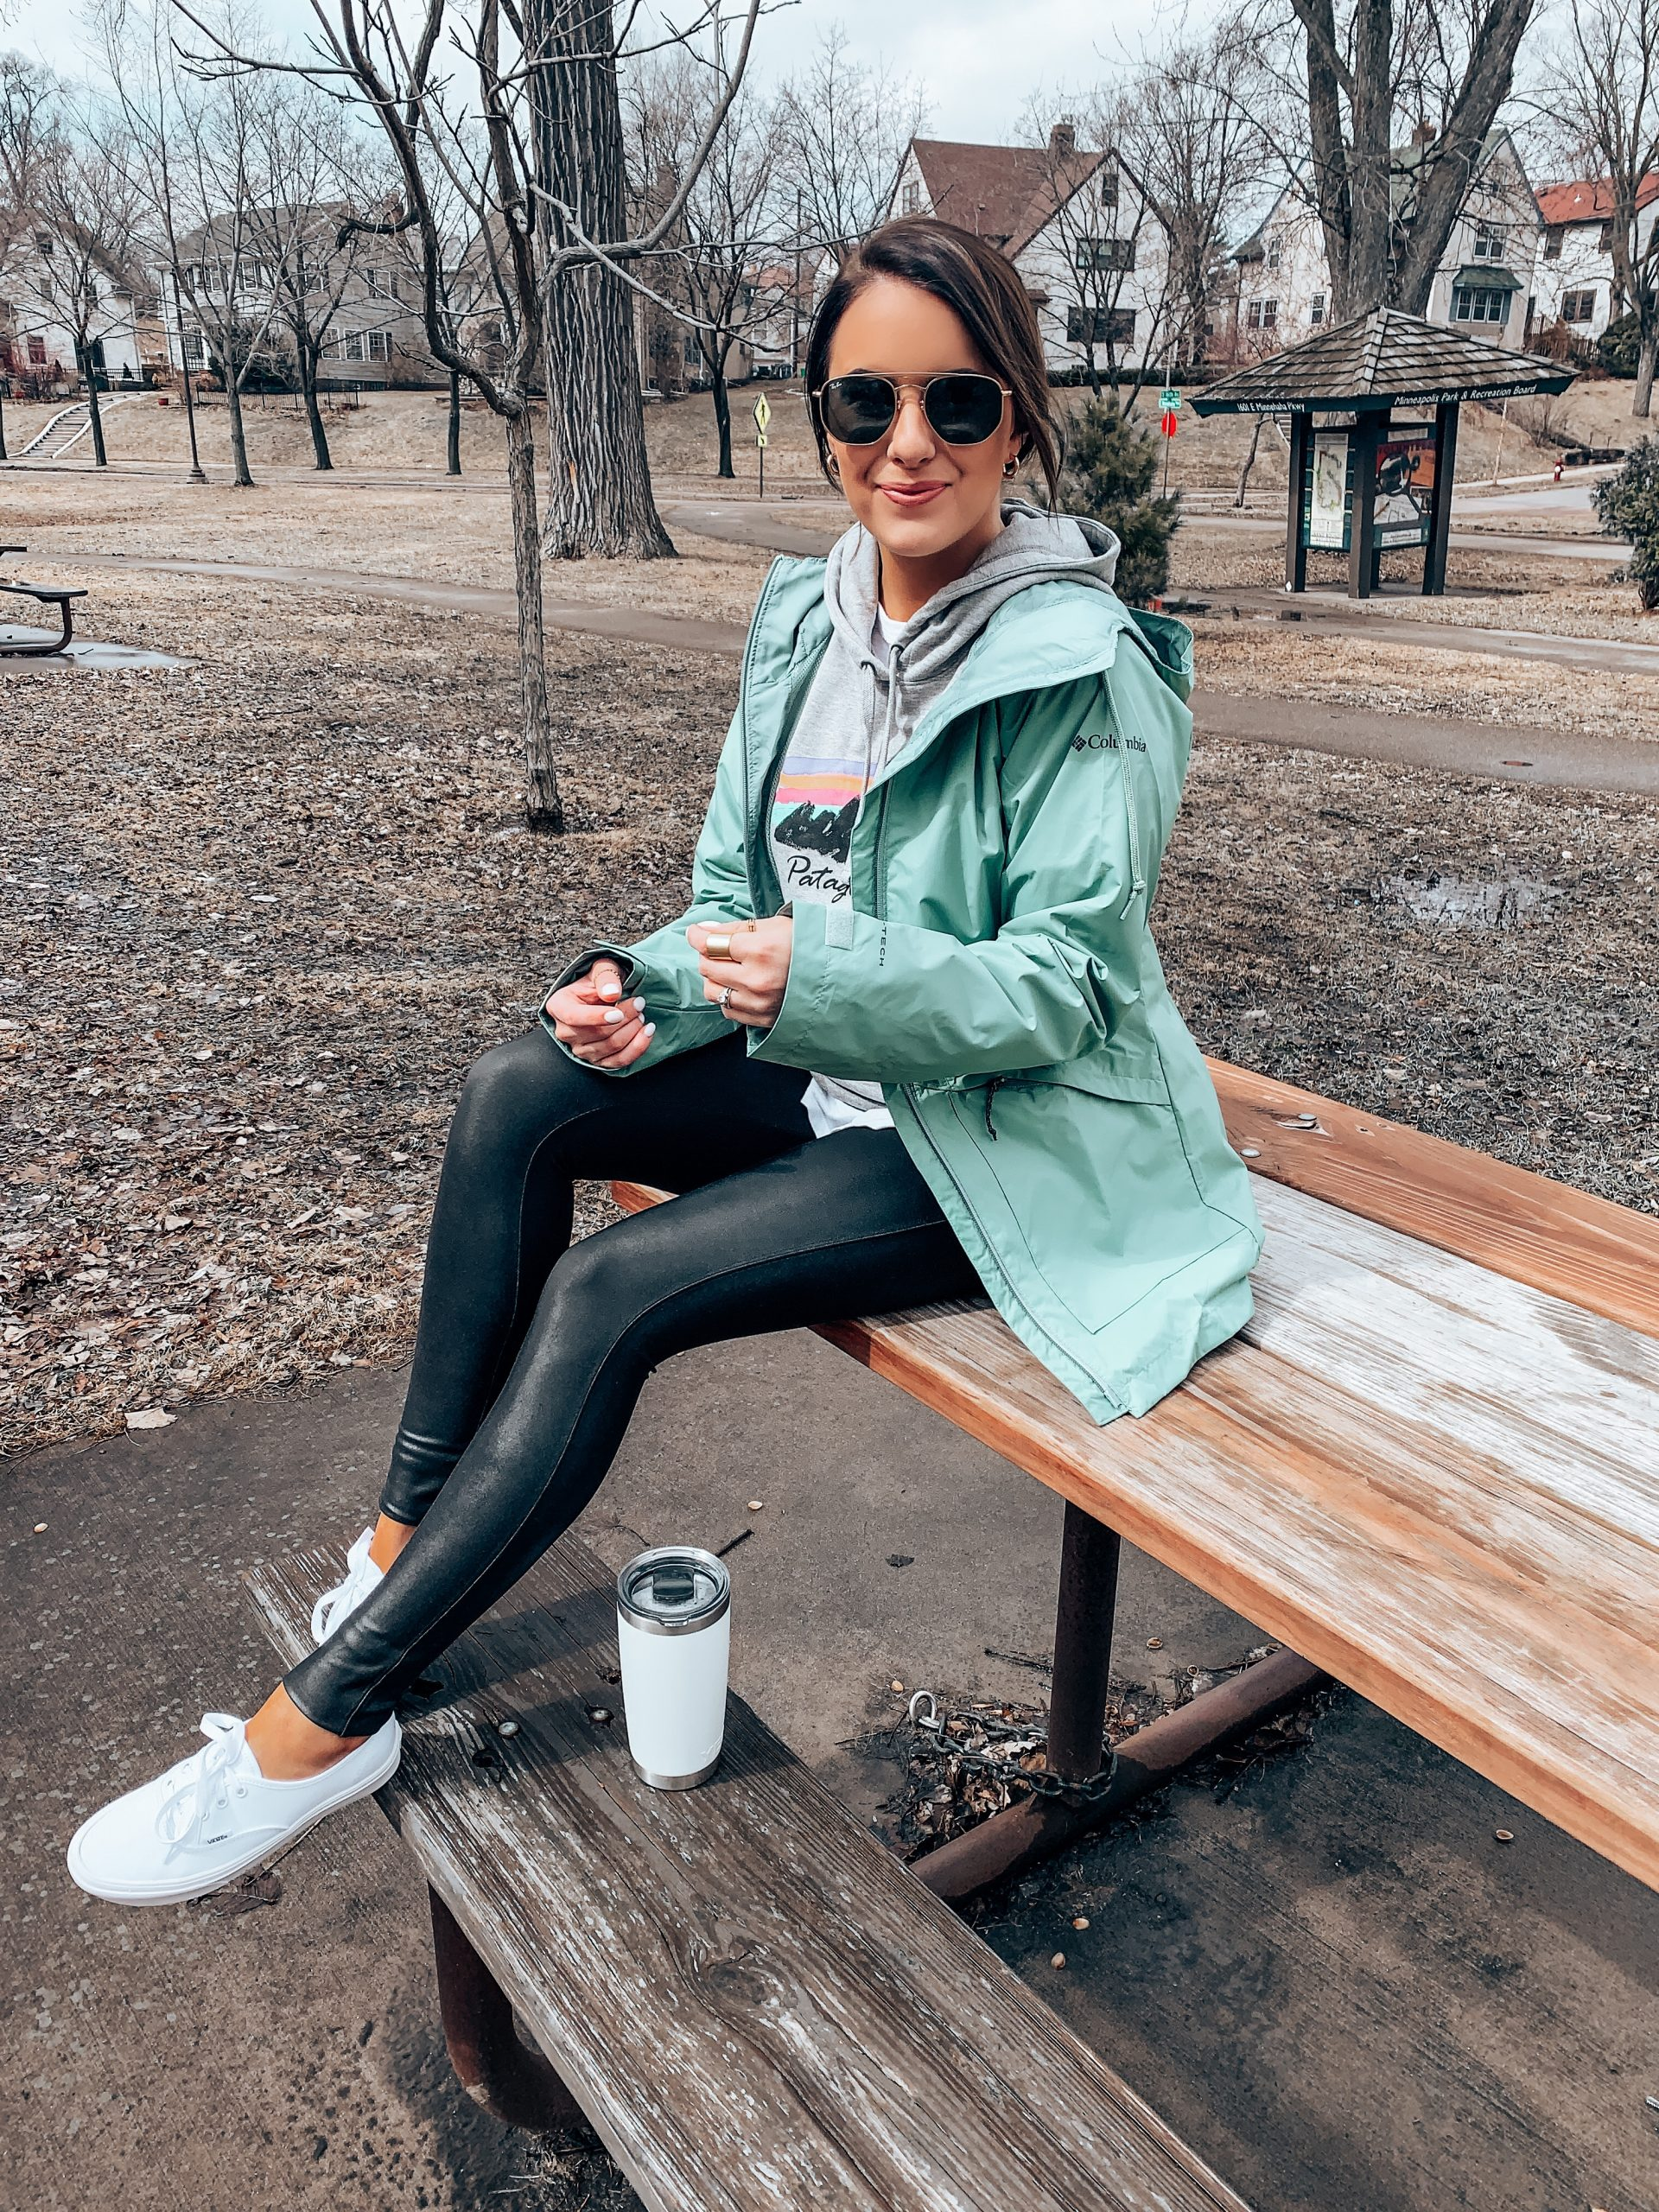 Affordable Spring Gear , Rain Jacket & Graphic Sweatshirt | Style Blogger Lauren Meyer shares Affordable Spring Gear from Backcountry